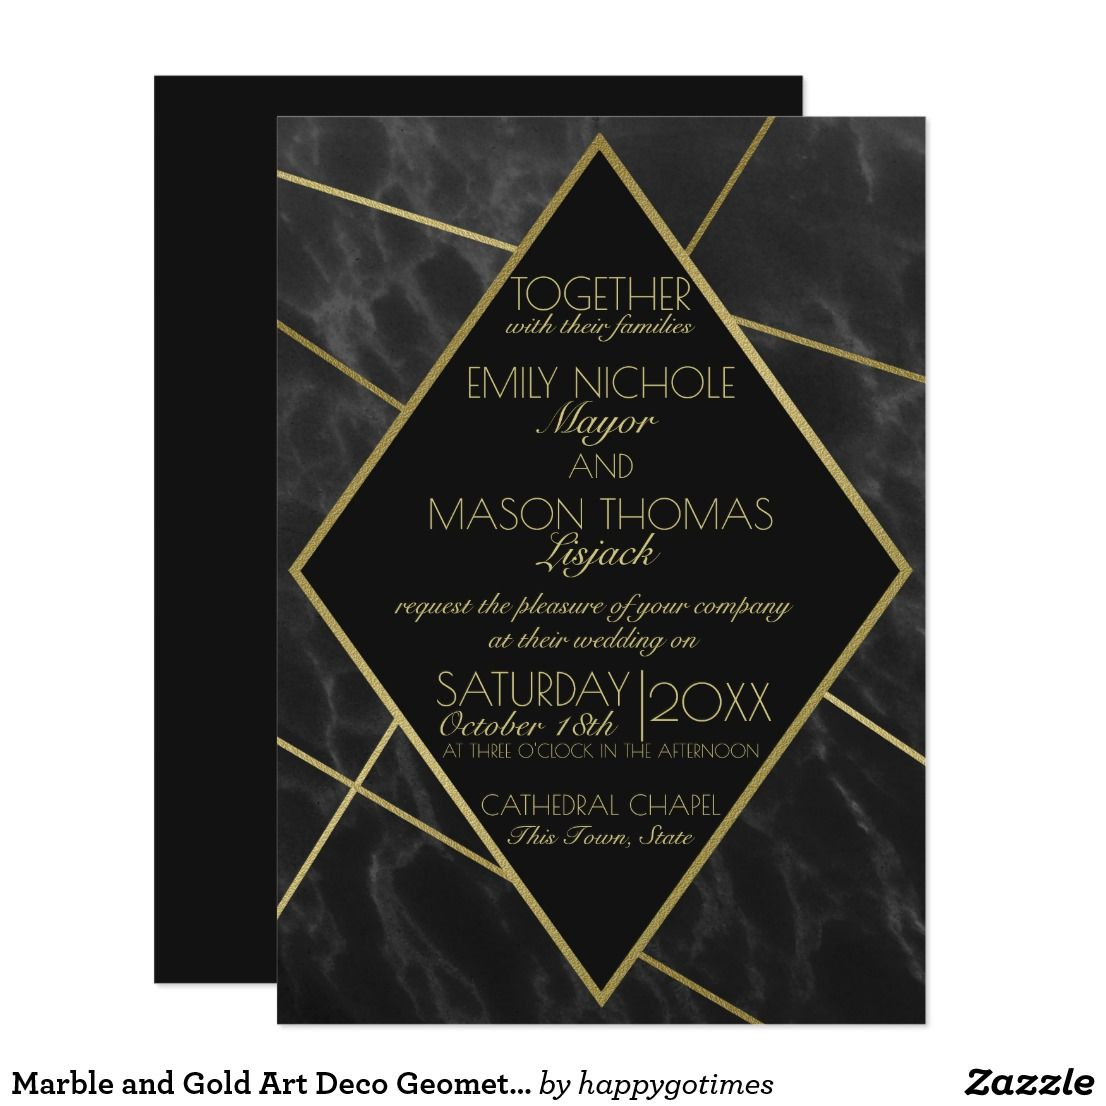 Marble And Gold Art Deco Geometric Slate Wedding Card Invites